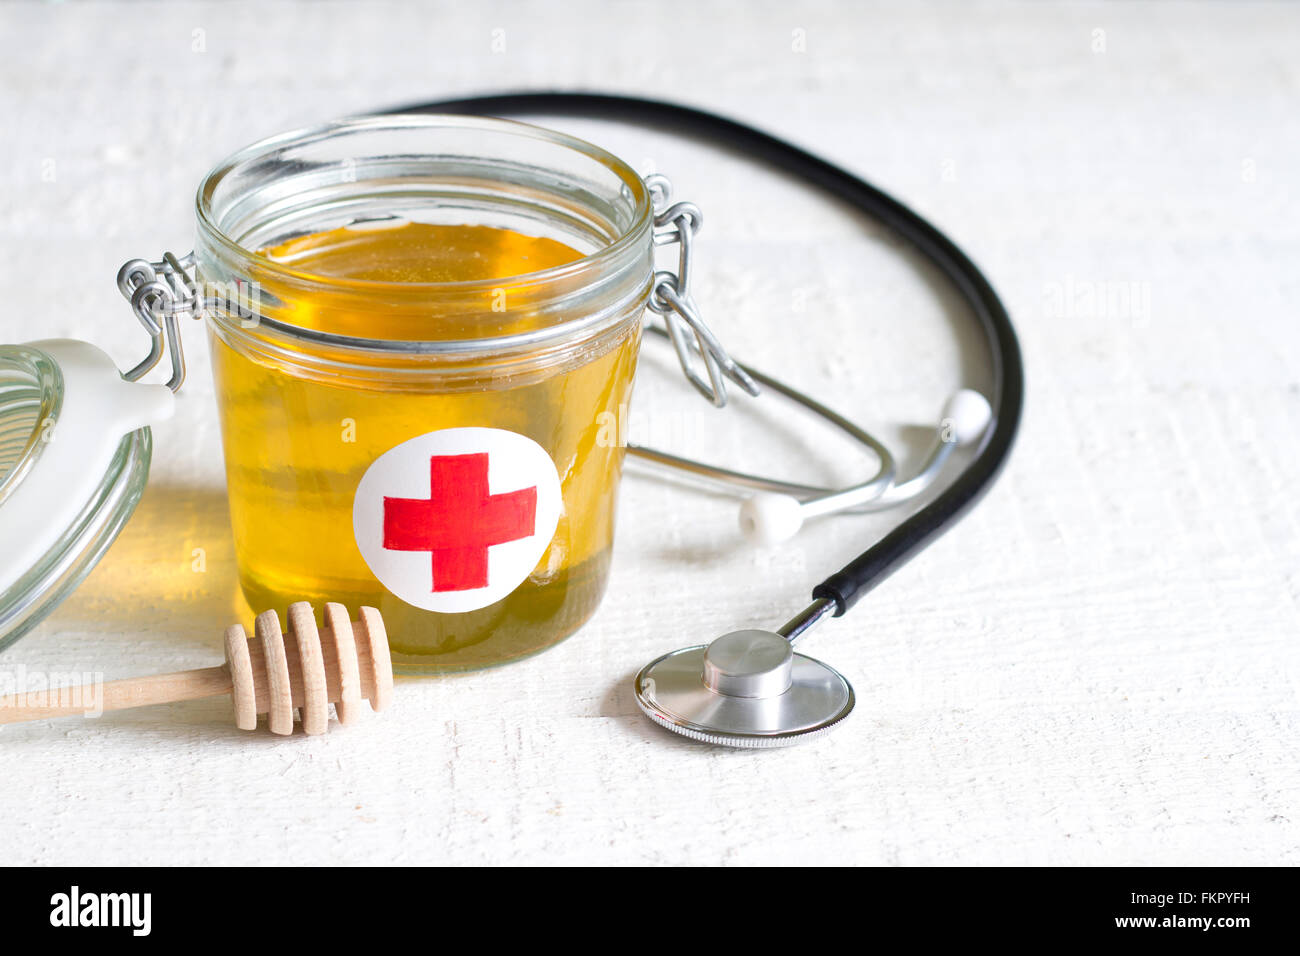 Le miel est un remède abstract health lifestyle concept Photo Stock